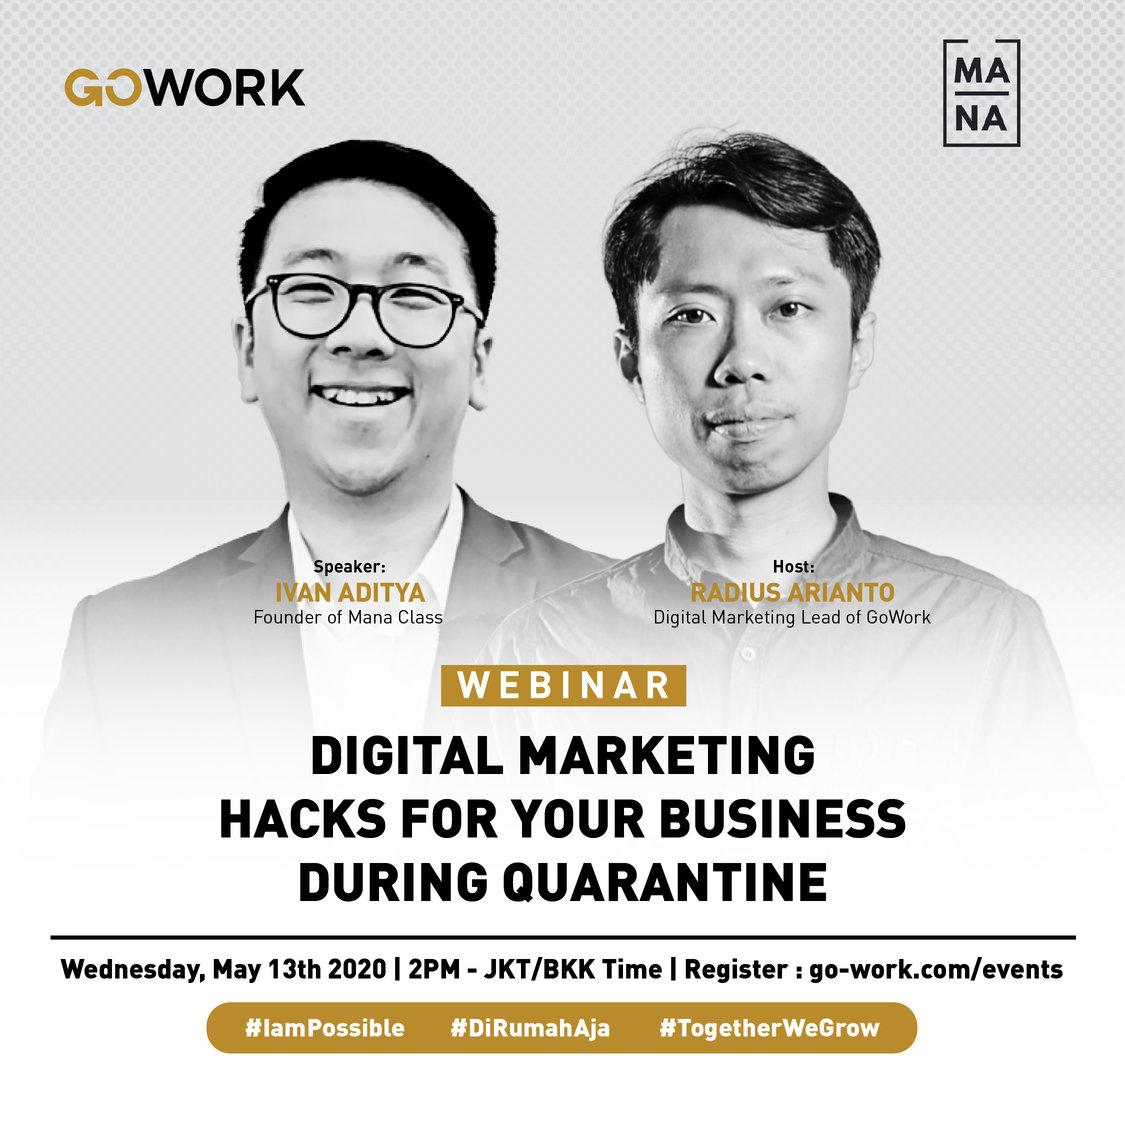 Digital Marketing Hacks for Your Business During Quarantine